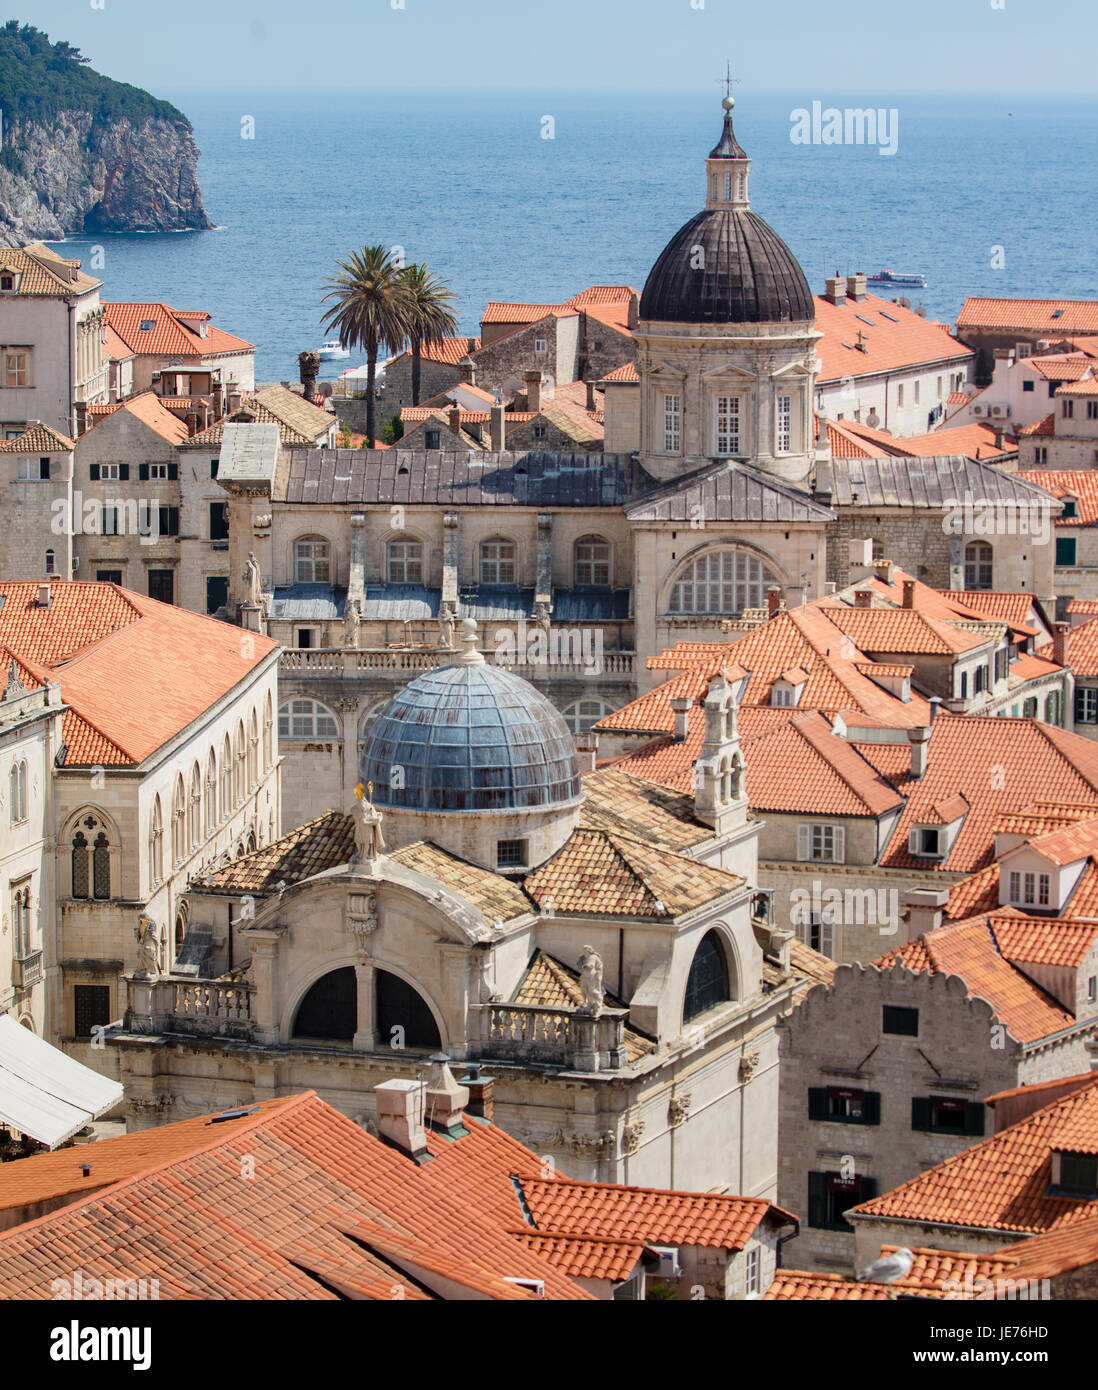 View from the massive defensive walls enclosing the beautiful red roofed medieval city of Dubrovnik on the Dalmation coast of Croatia Stock Photo